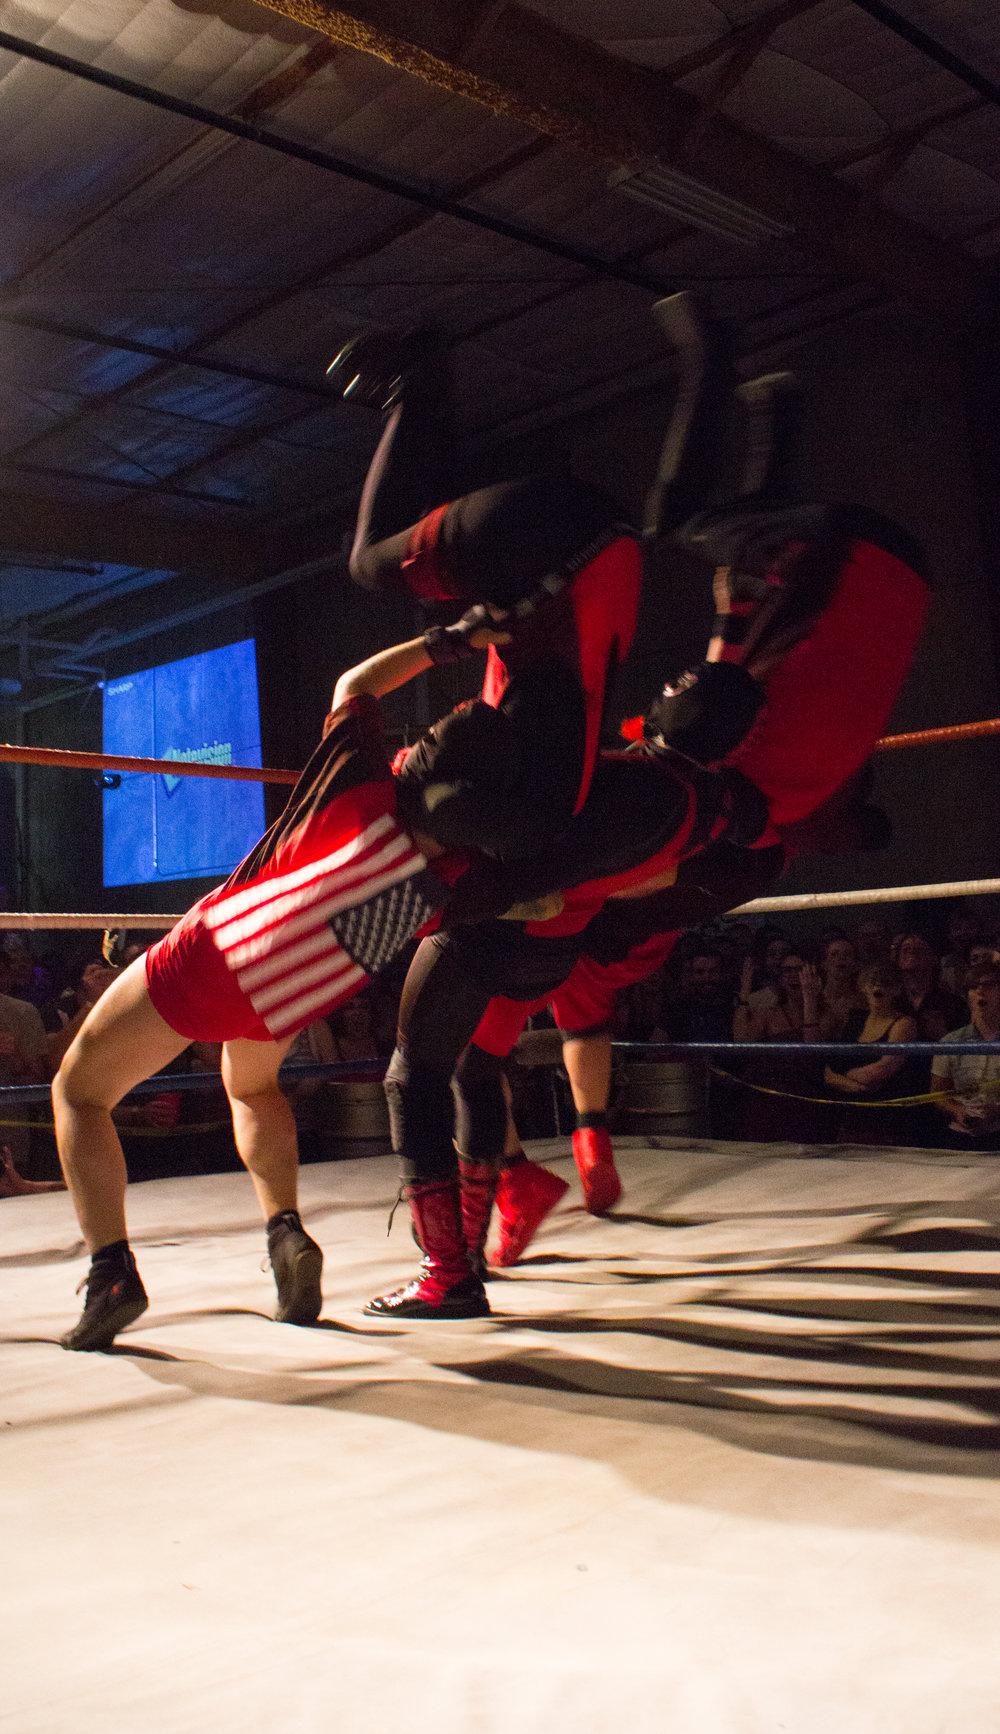 Party World Rasslin' - #DARKWAR - 2015